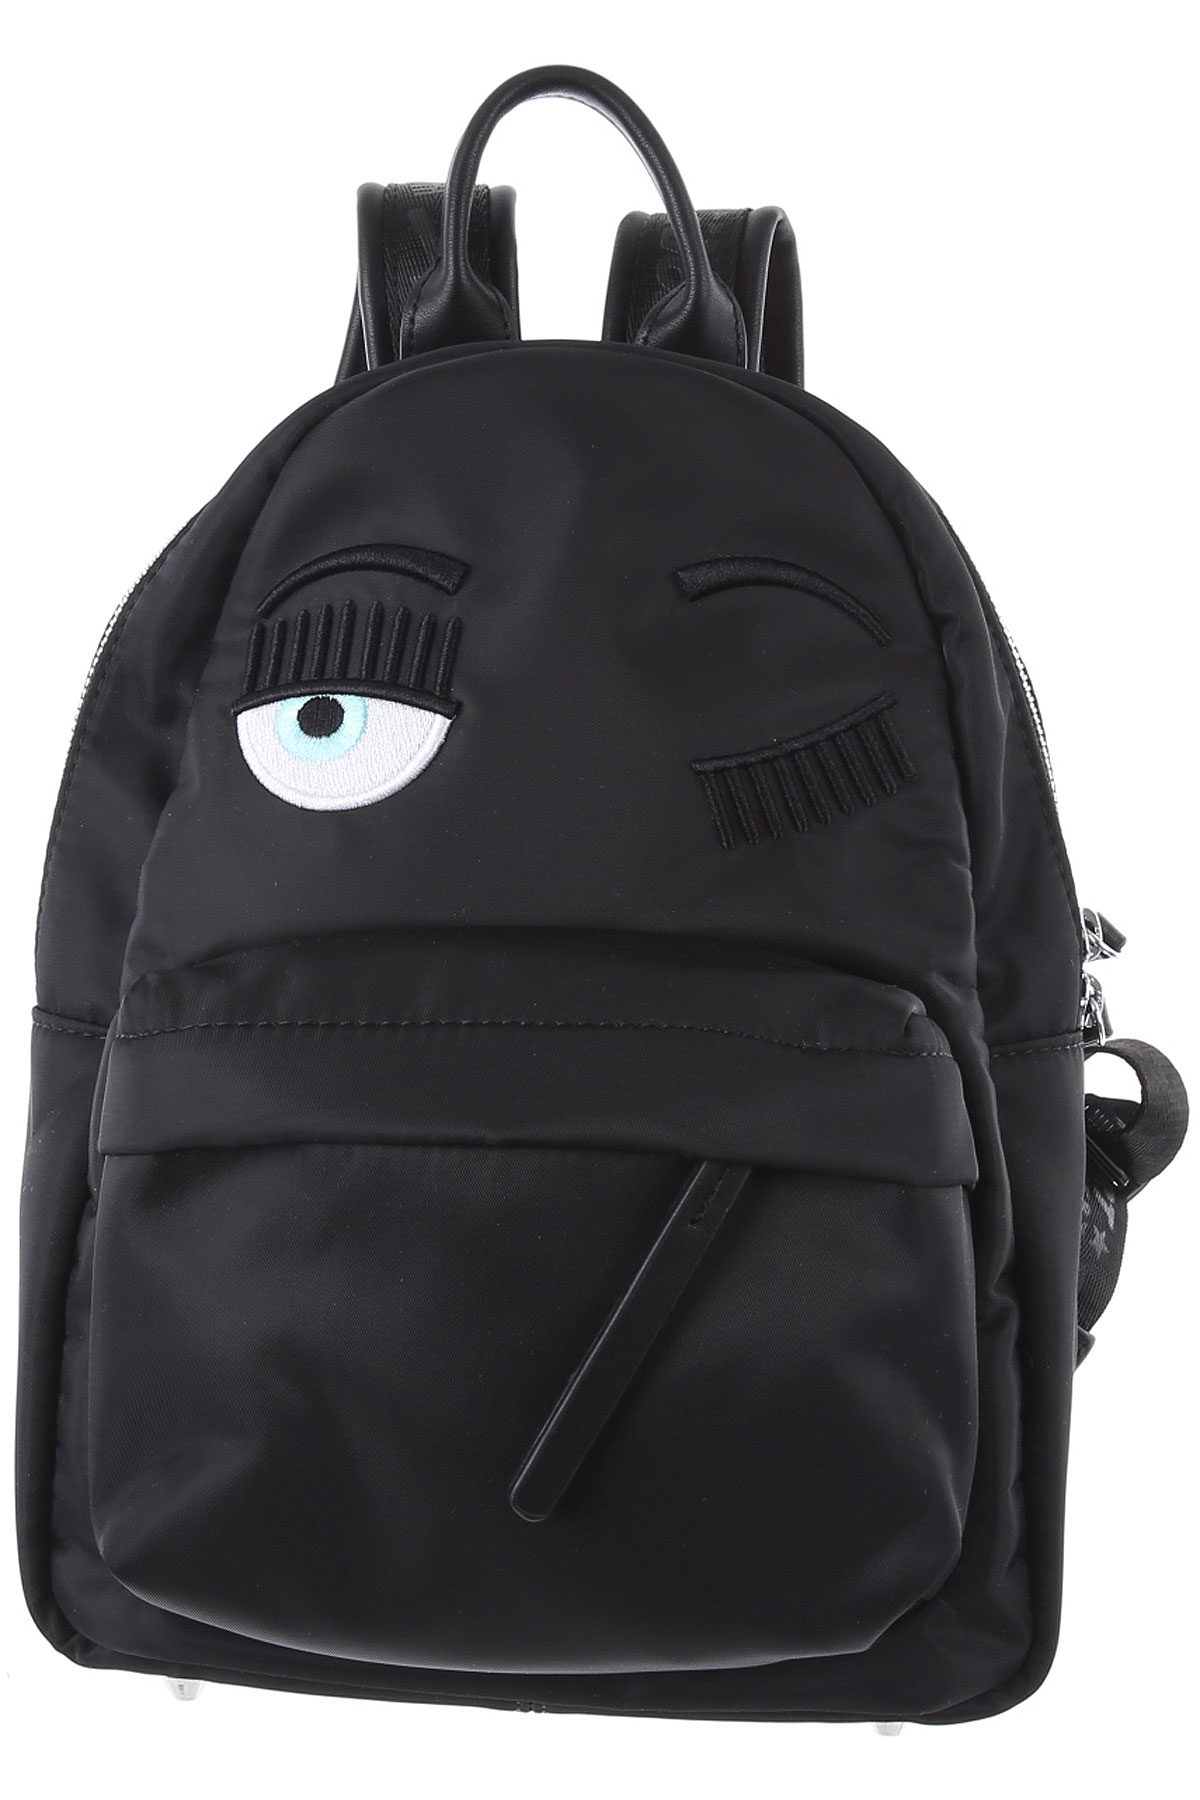 Chiara Ferragni Backpack for Women On Sale, Black, Nylon, 2019